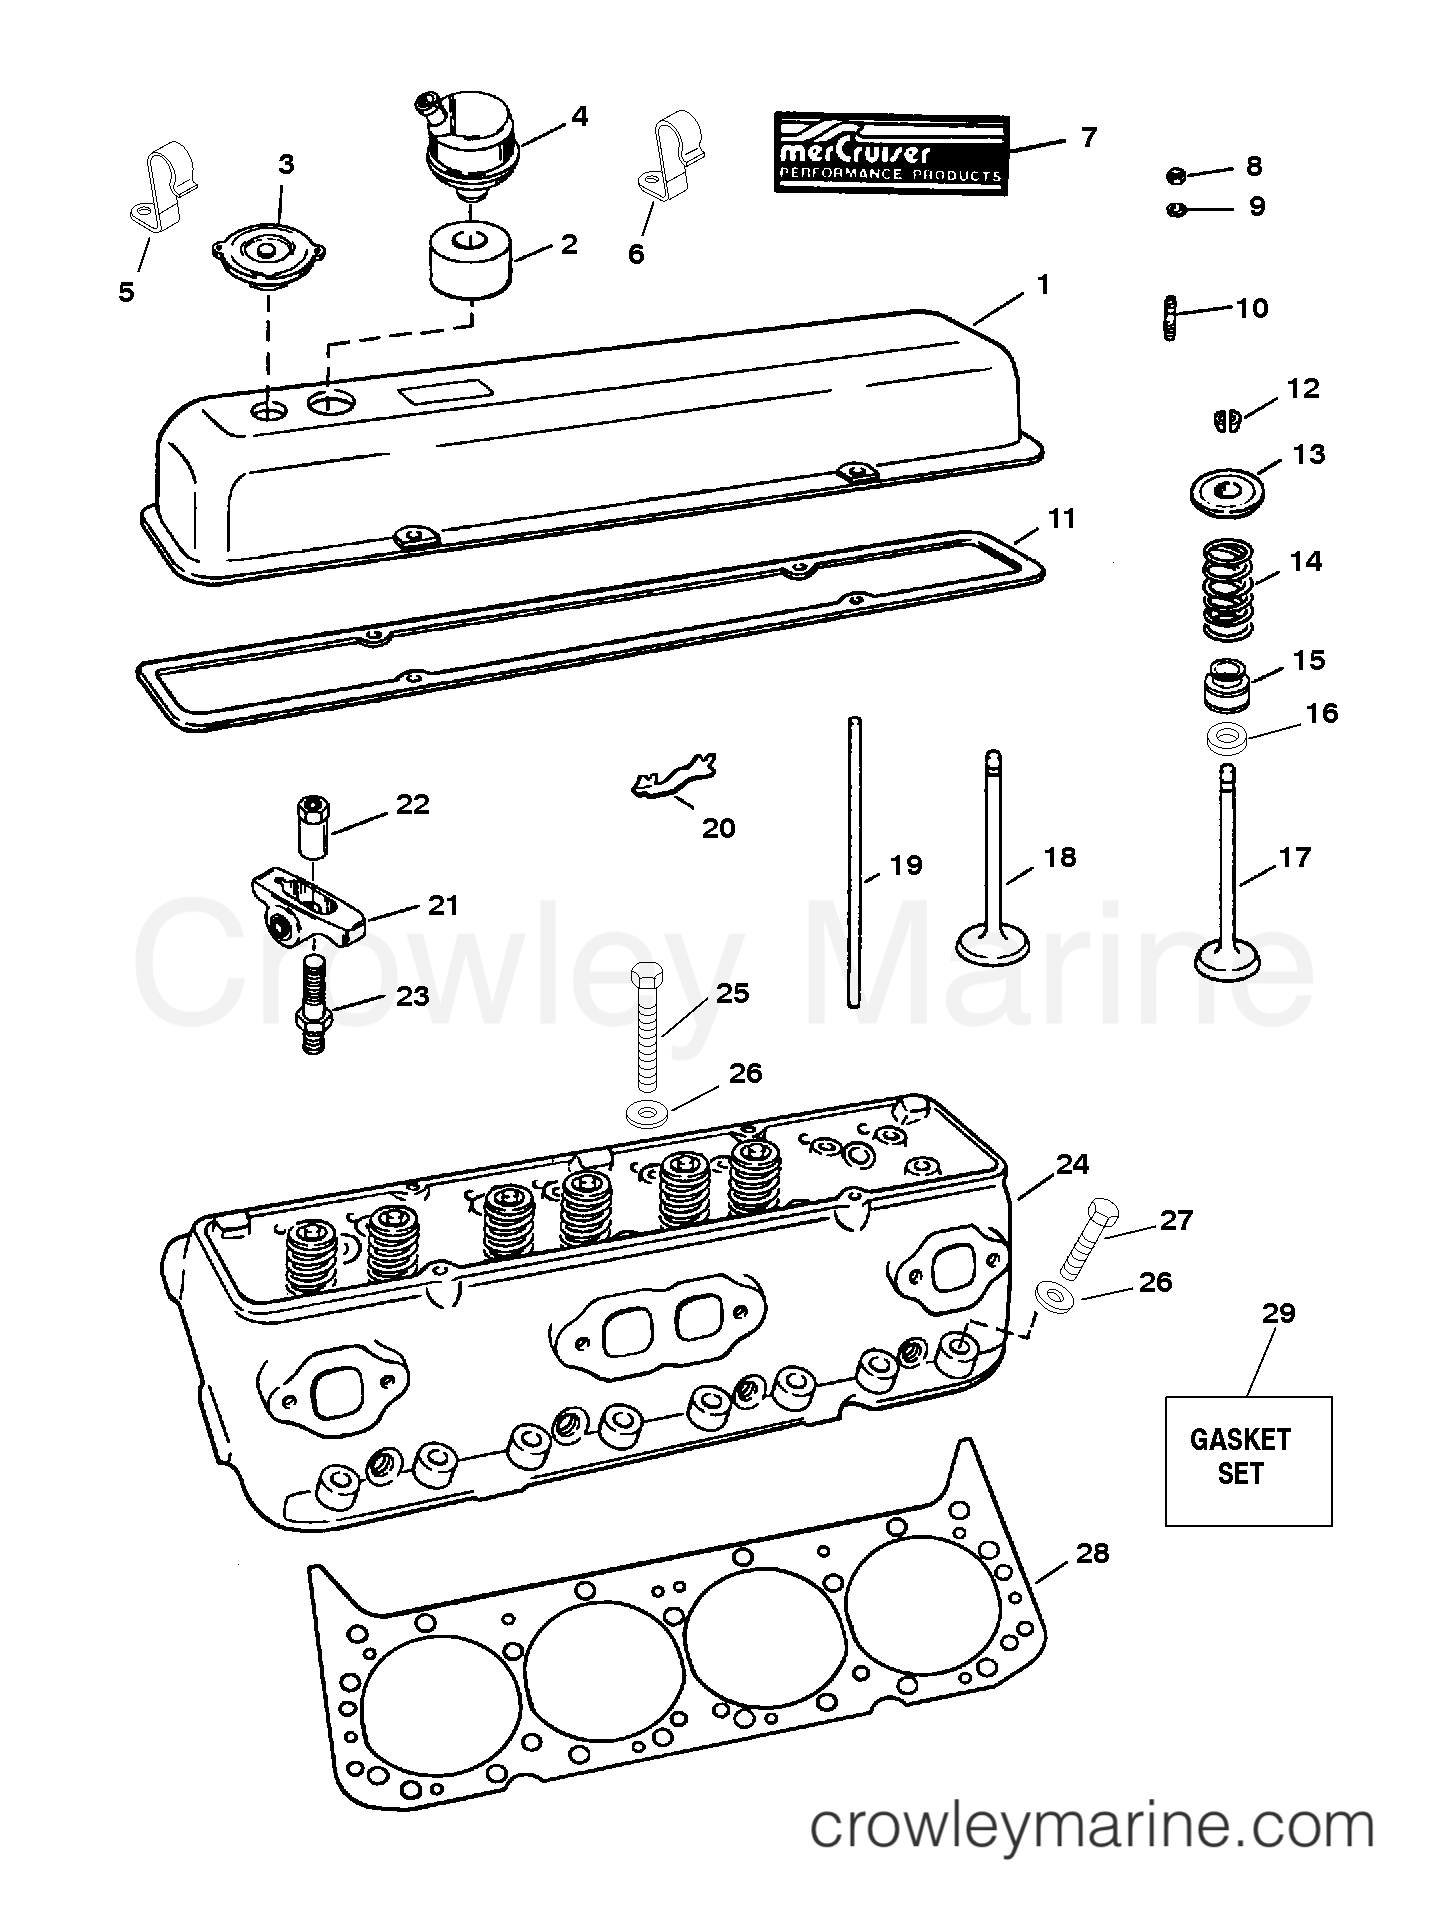 1992 Mercruiser Race Sterndrive 500 [III/IV] - 4500740EH - CYLINDER HEAD/ROCKER COVER (SERIAL # 0F348987 AND DOWN) section